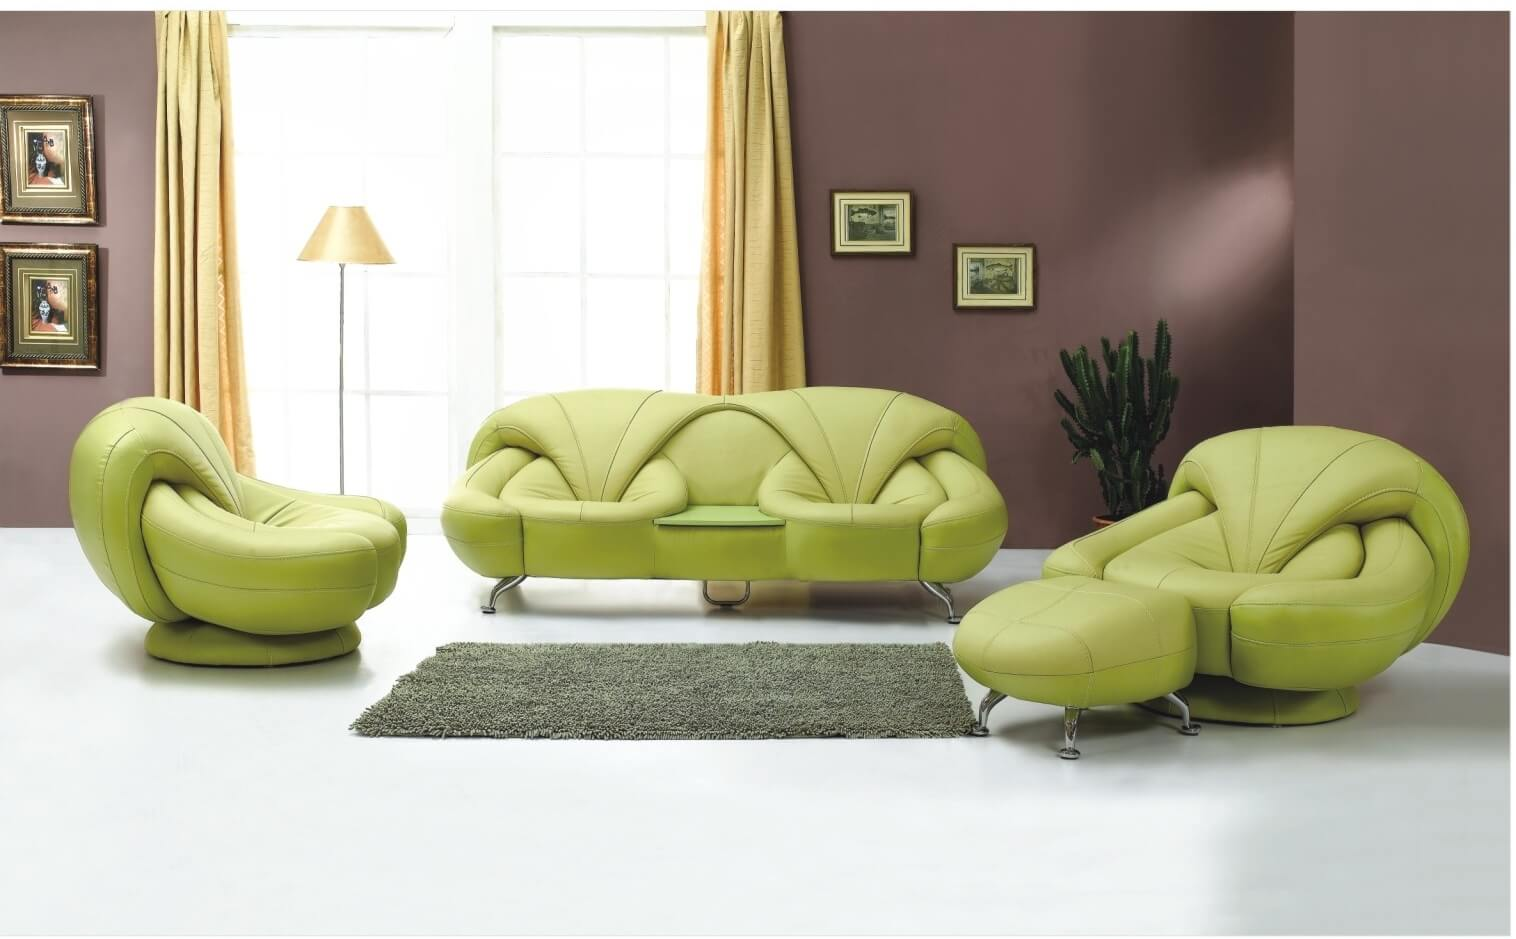 Couch Designs 22 Couch Designs For Living Room That Known For Its Best Comfort